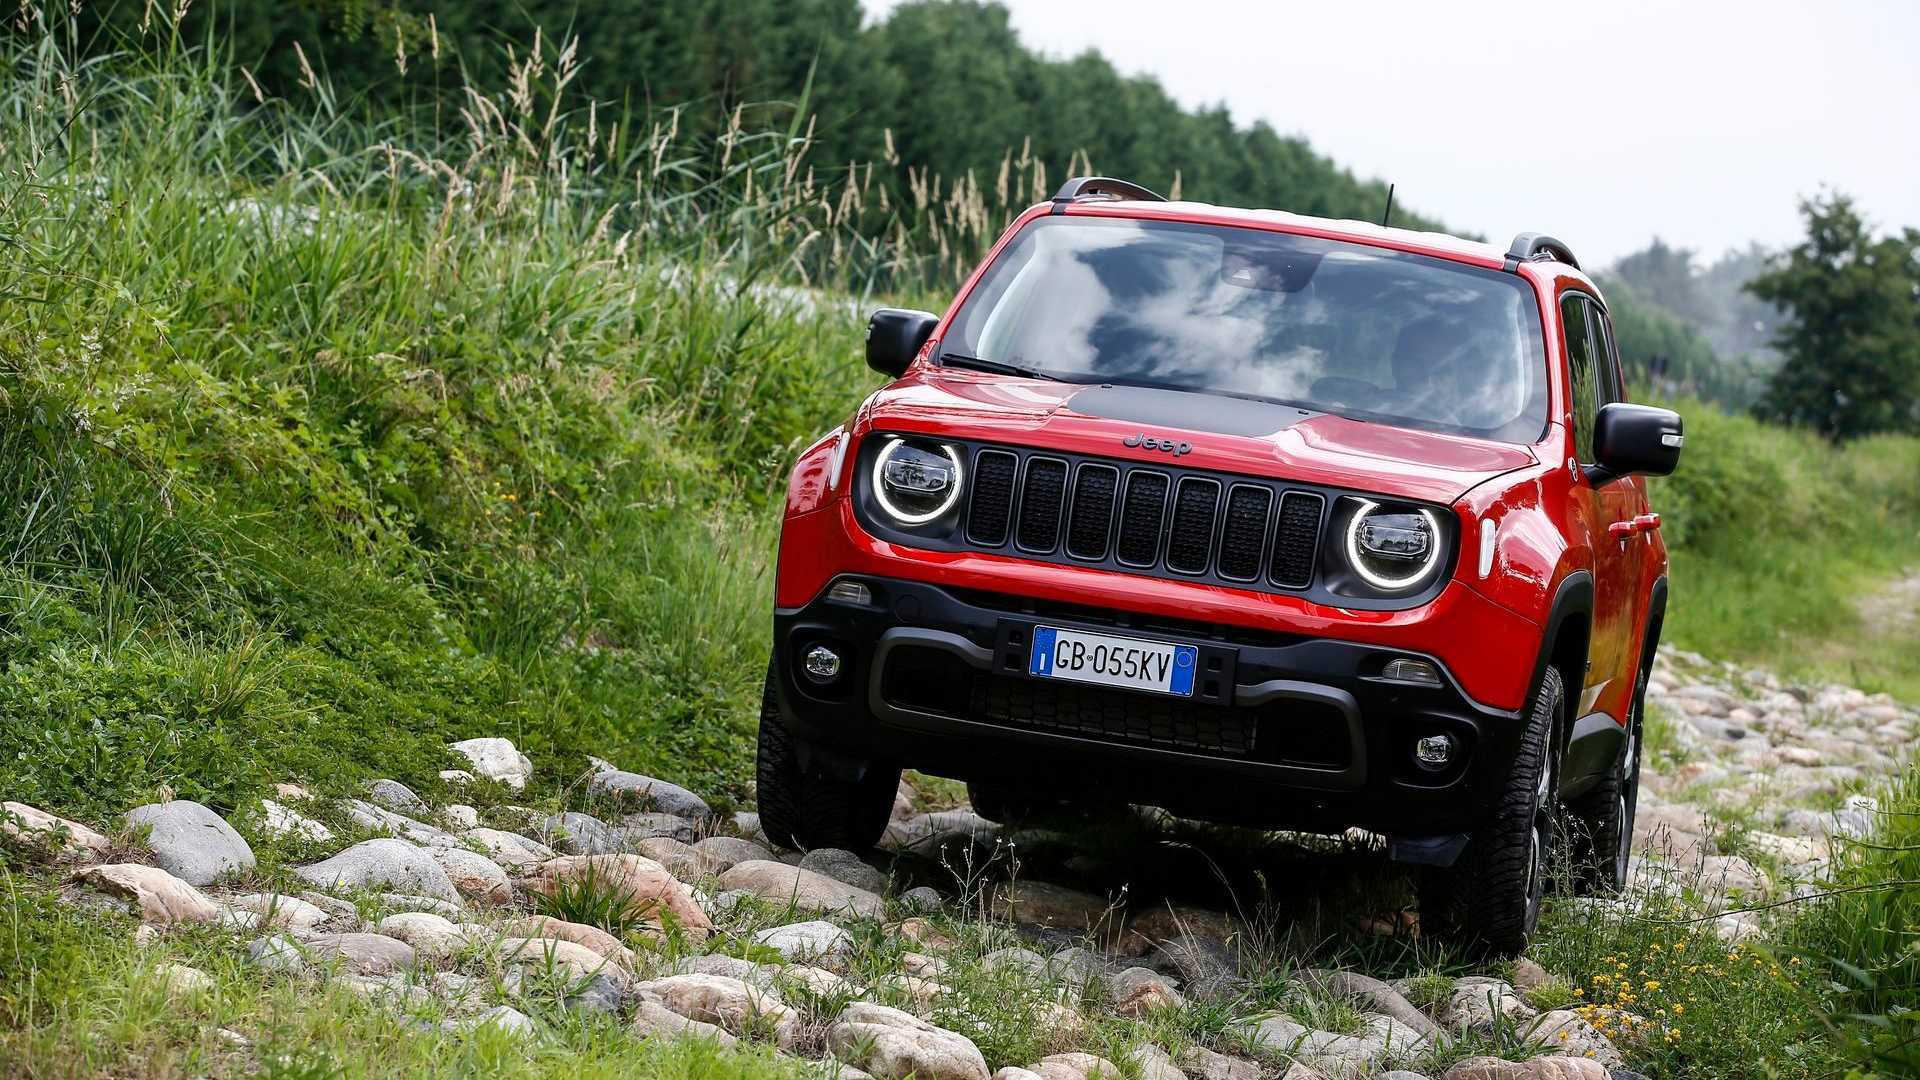 If the rumors are true, then the Jeep Renegade may soon lose its status of the marque's most compact car, as a new model could be coming to the market.